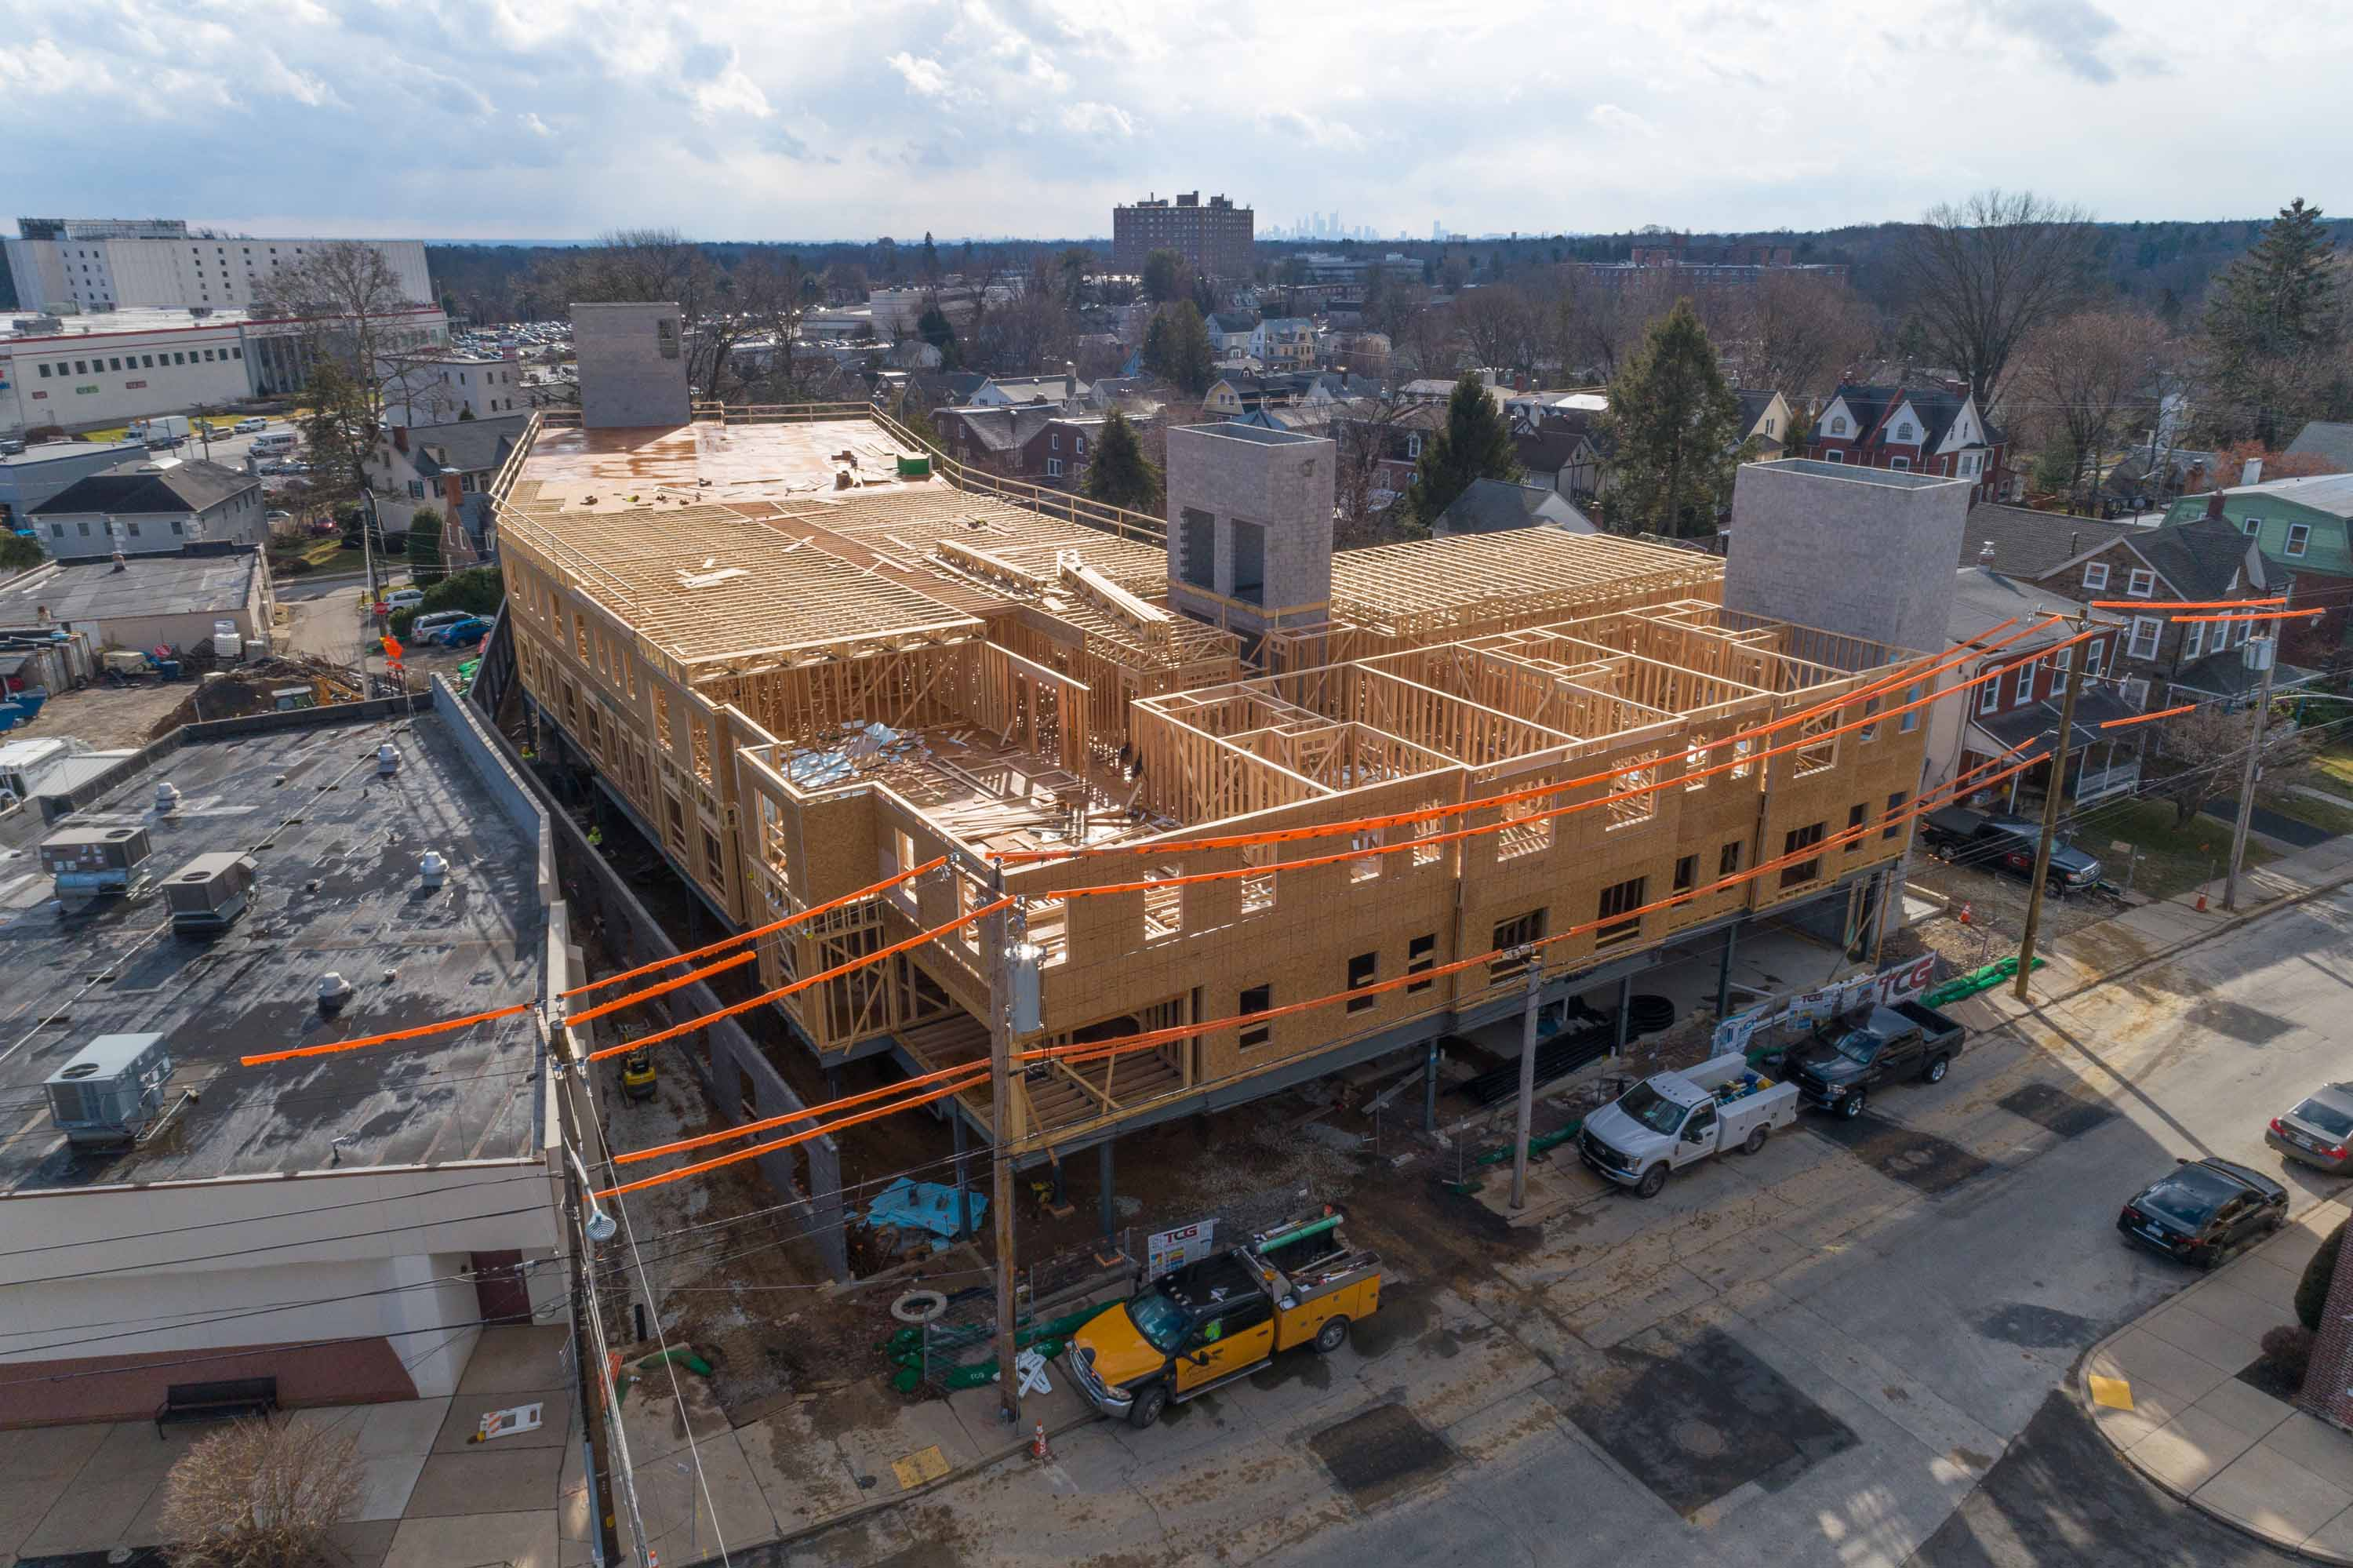 610 SUMMIT AVE AERIAL 2020-01 WEFILMHPILLY-0516